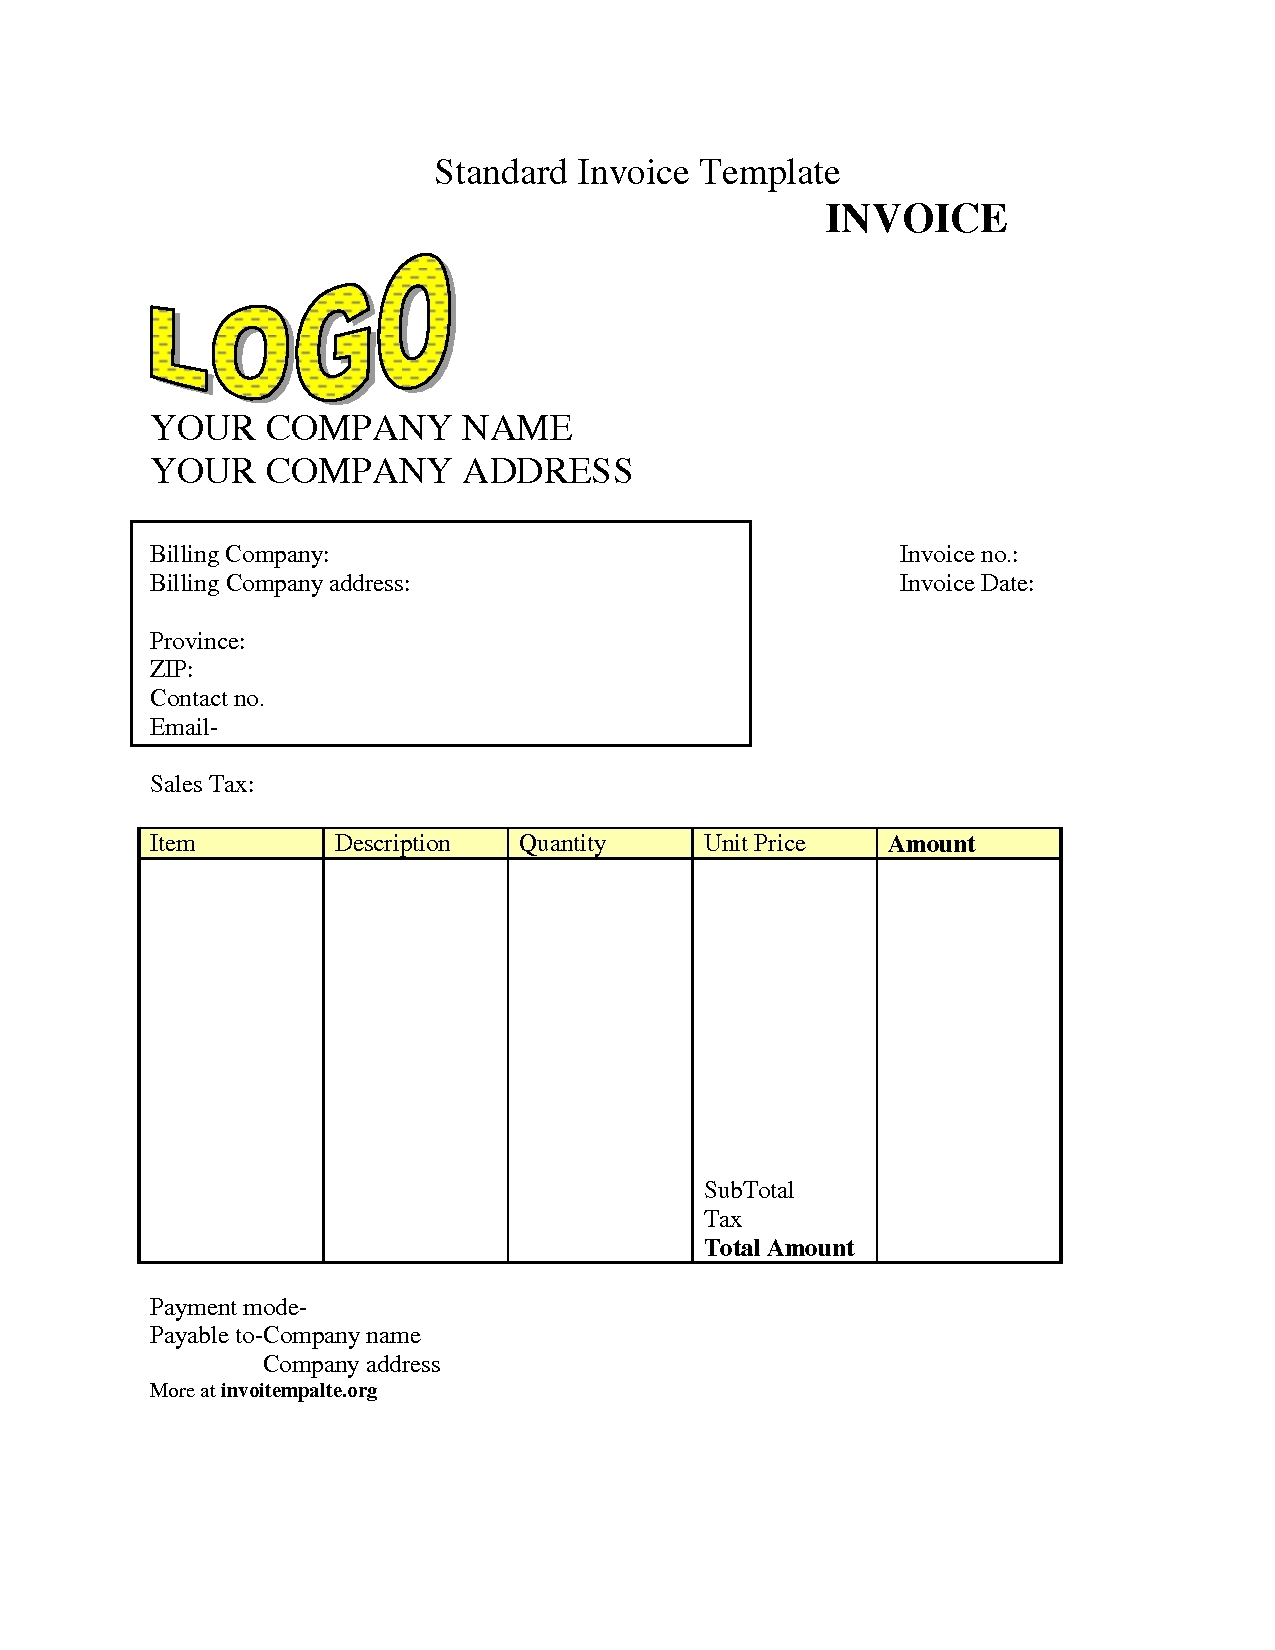 download form free invoice template here is a preview of the invoice forms free